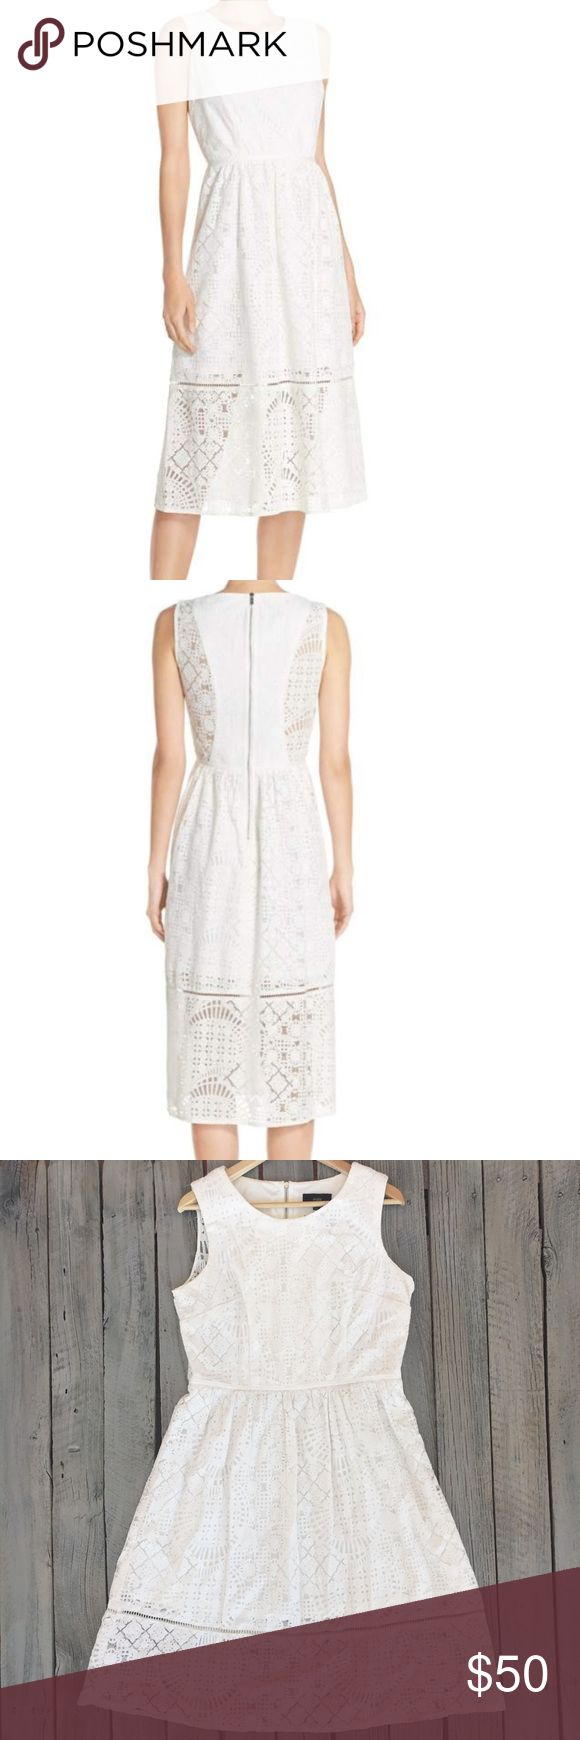 Maia White Lace Knee Length Sleeveless Dress SZ 14 Modcloth Maia from Nordstrom • White crochet lace • Sleeveless • Midi length dress • Zipper closure up entire back • 3/4 of the way down lined • Women's size 14 • EUC Modcloth Dresses Midi